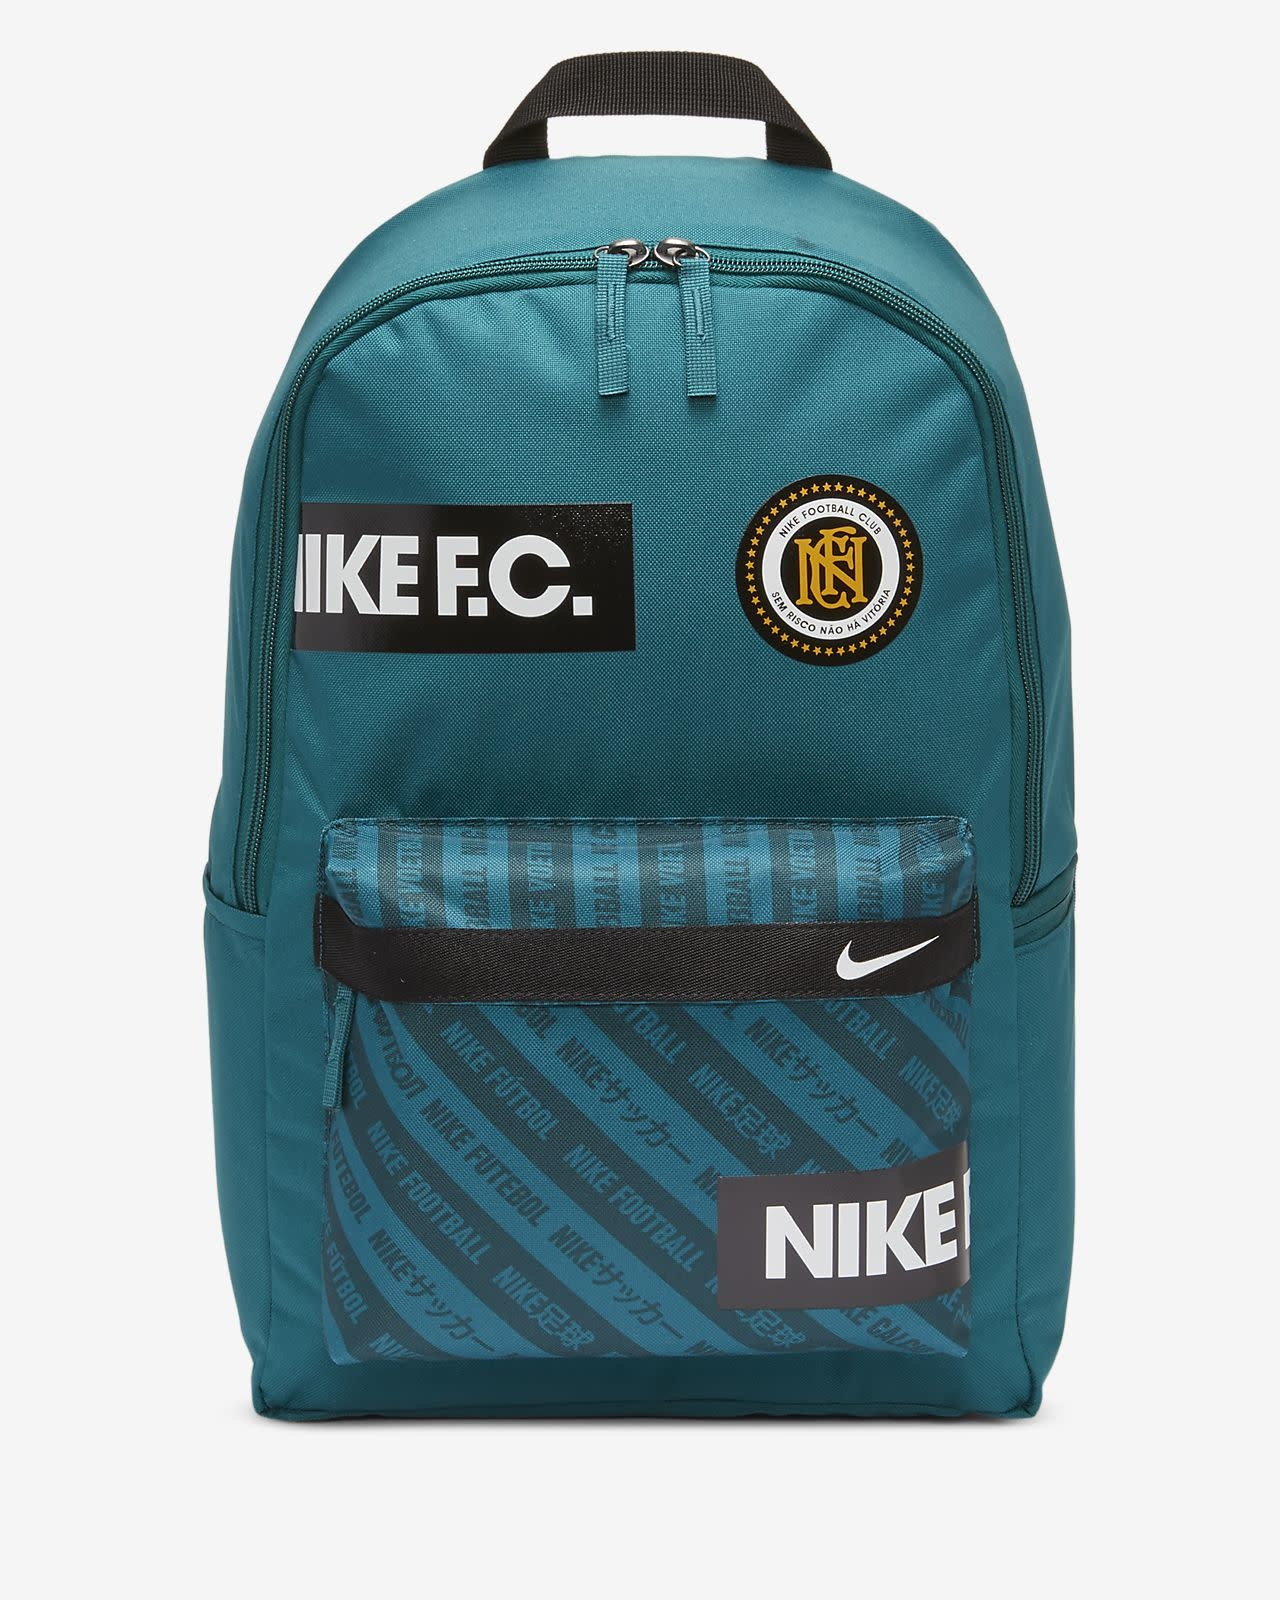 Nike NIKE F.C. Backpack